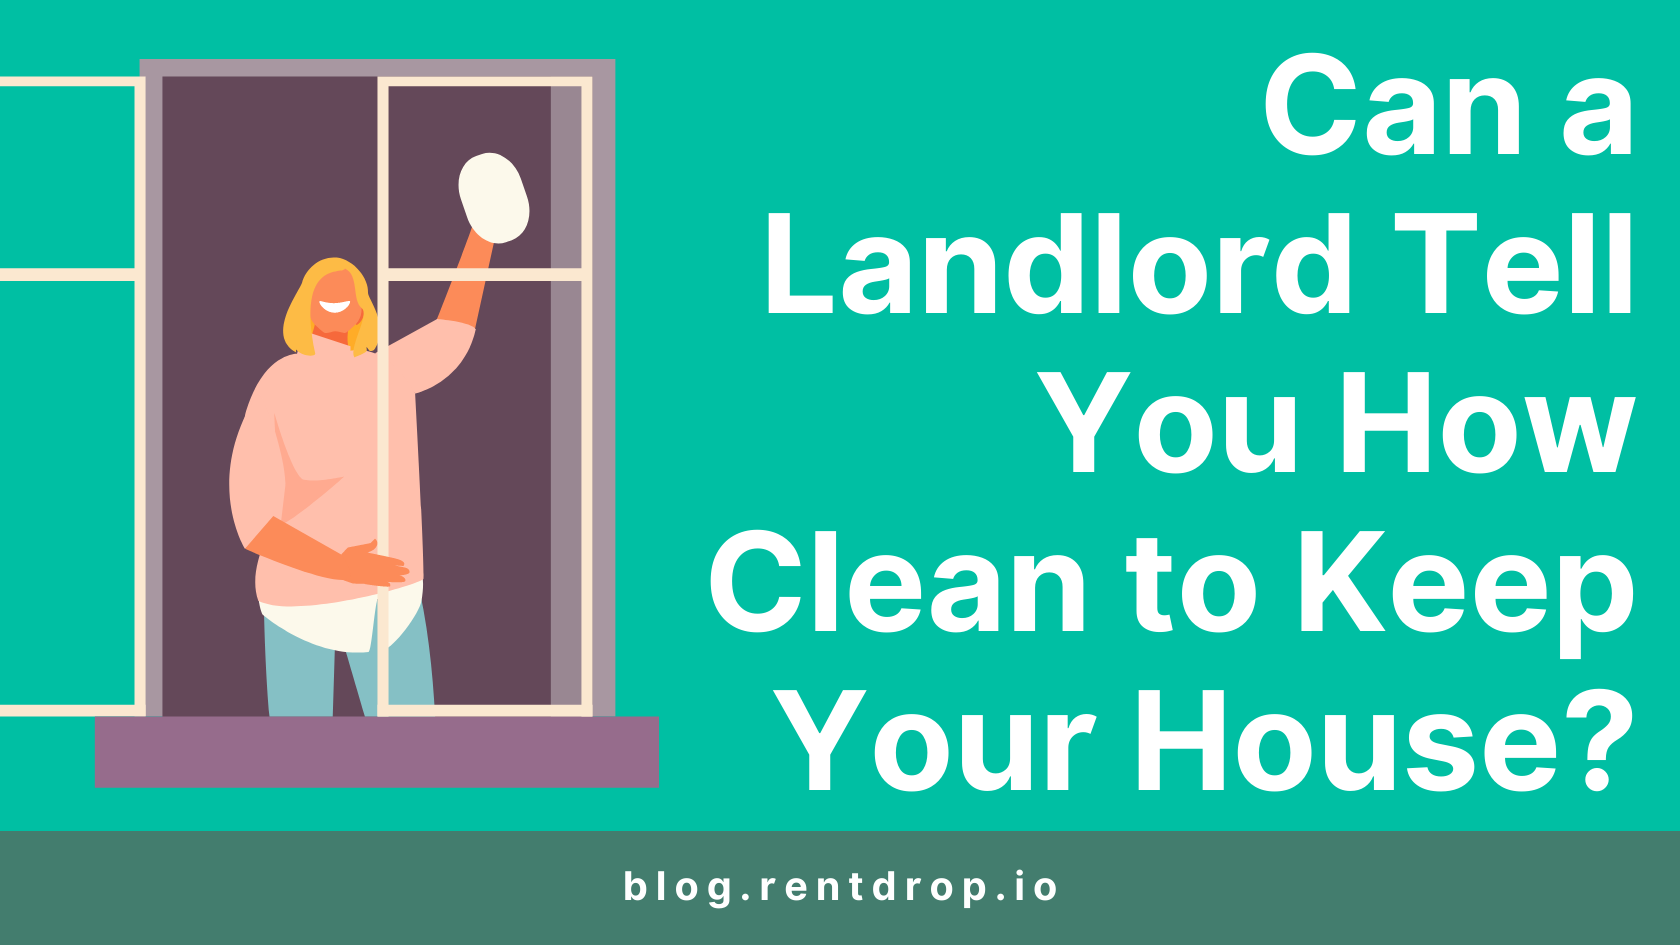 rentdrop can a landlord tell you how clean to keep your house